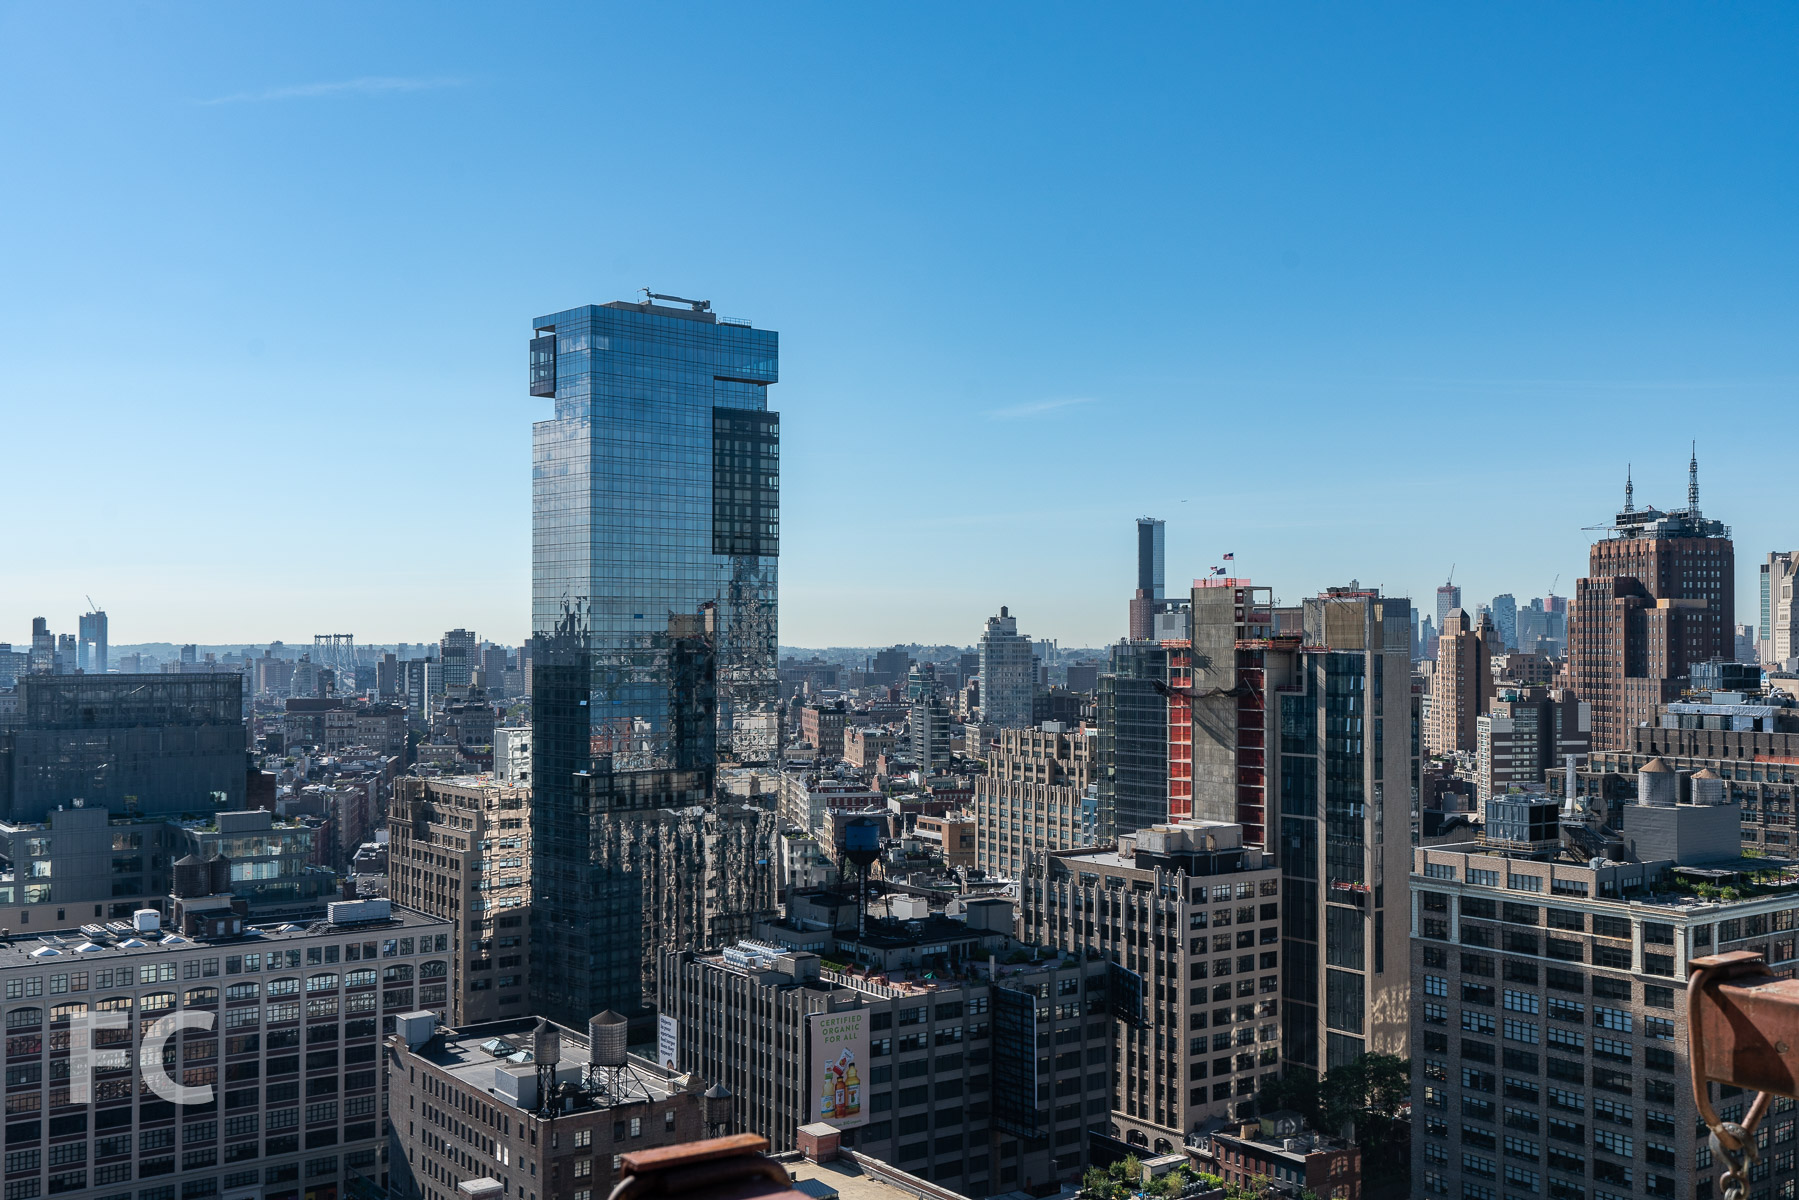 View southeast towards SoHo from the top floor.